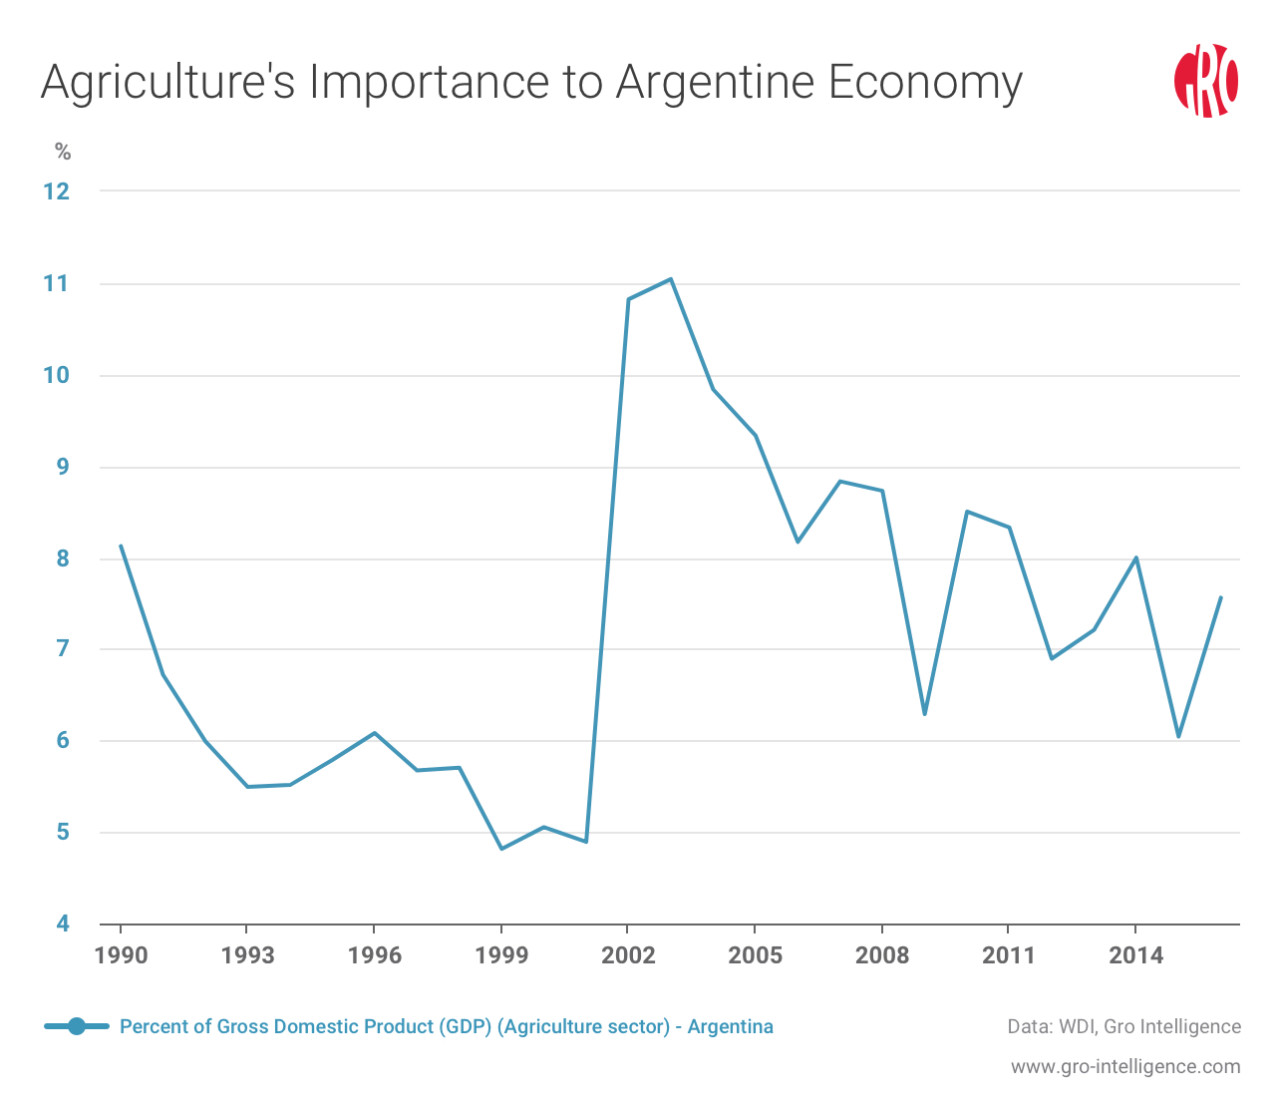 Agriculture's Importance to the Argentine Economy